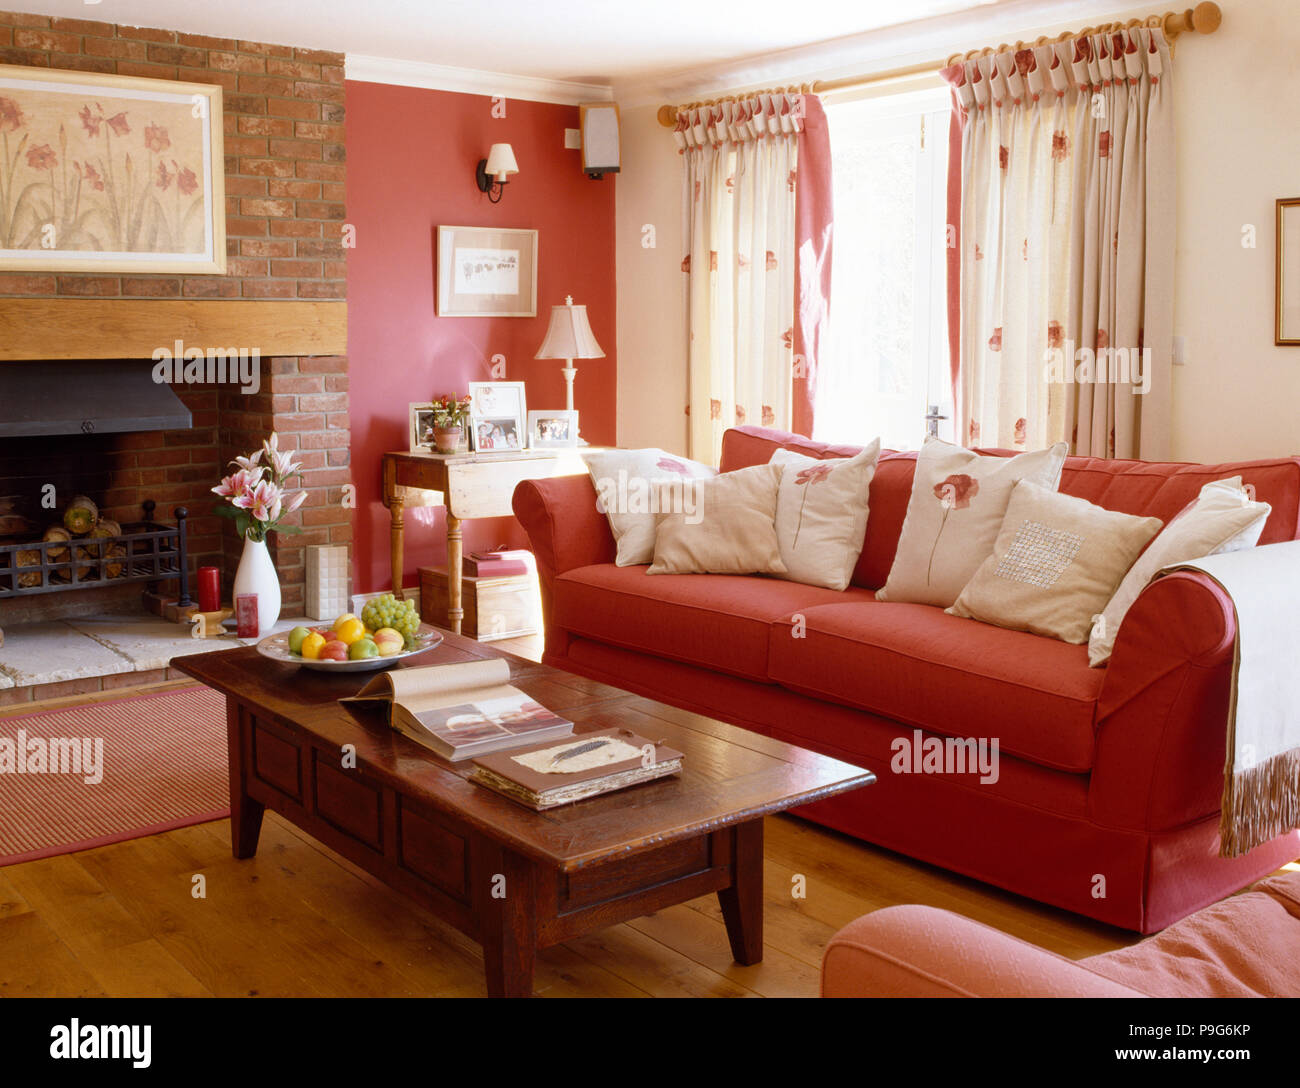 Red Living Room: Wooden Coffee Table And Red Sofa With White Cushions In A